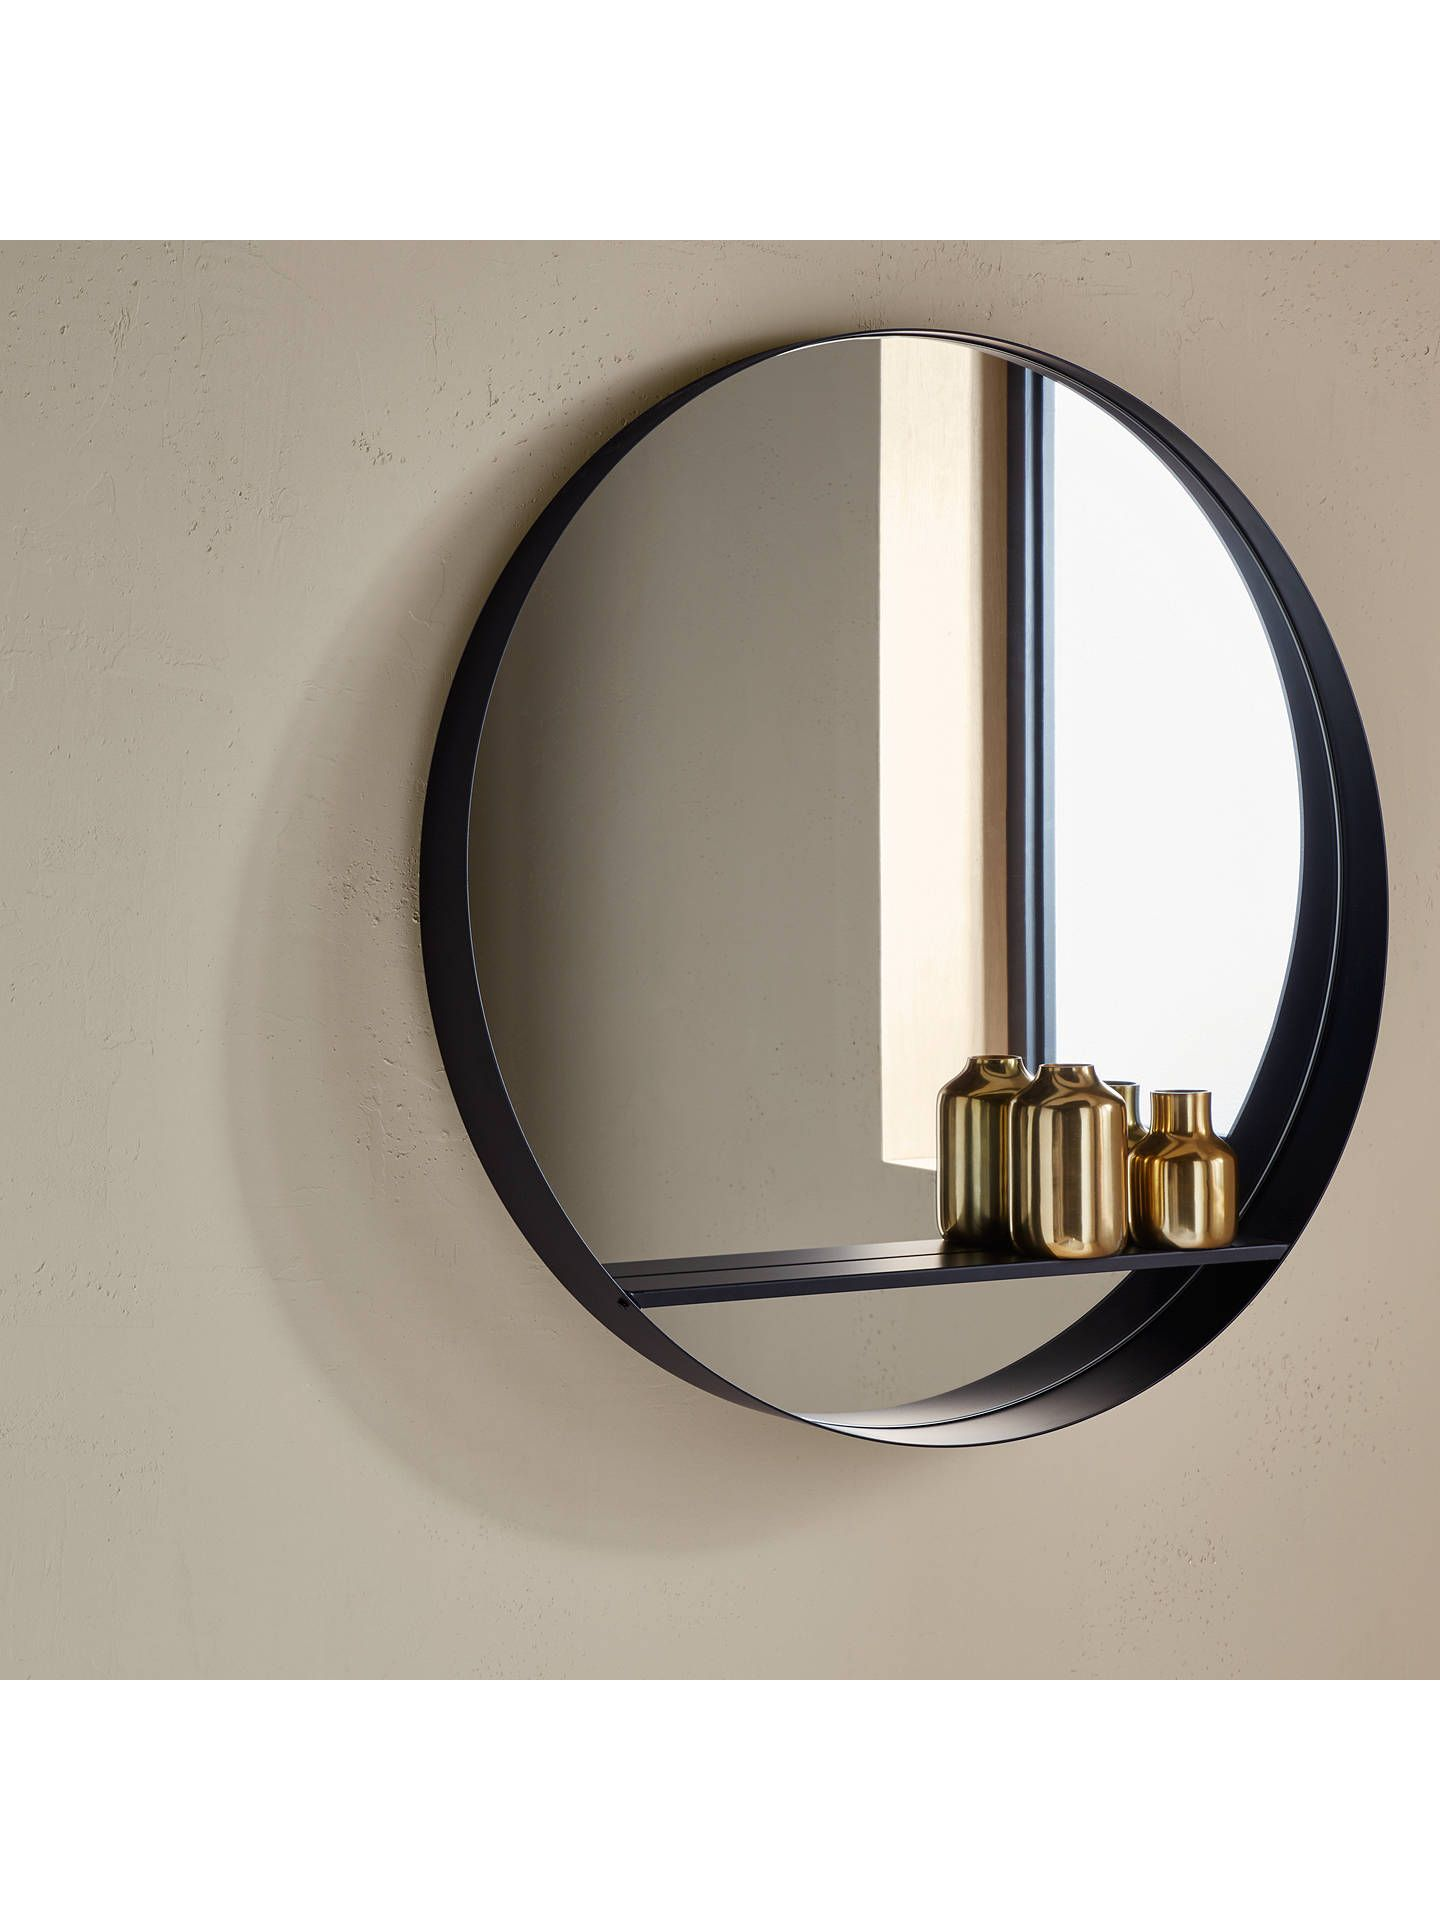 Design Project By John Lewis No 120 Circle Mirror With Shelf Dia 82 5cm Black Circle Mirror Mirror With Shelf Black Mirror Frame